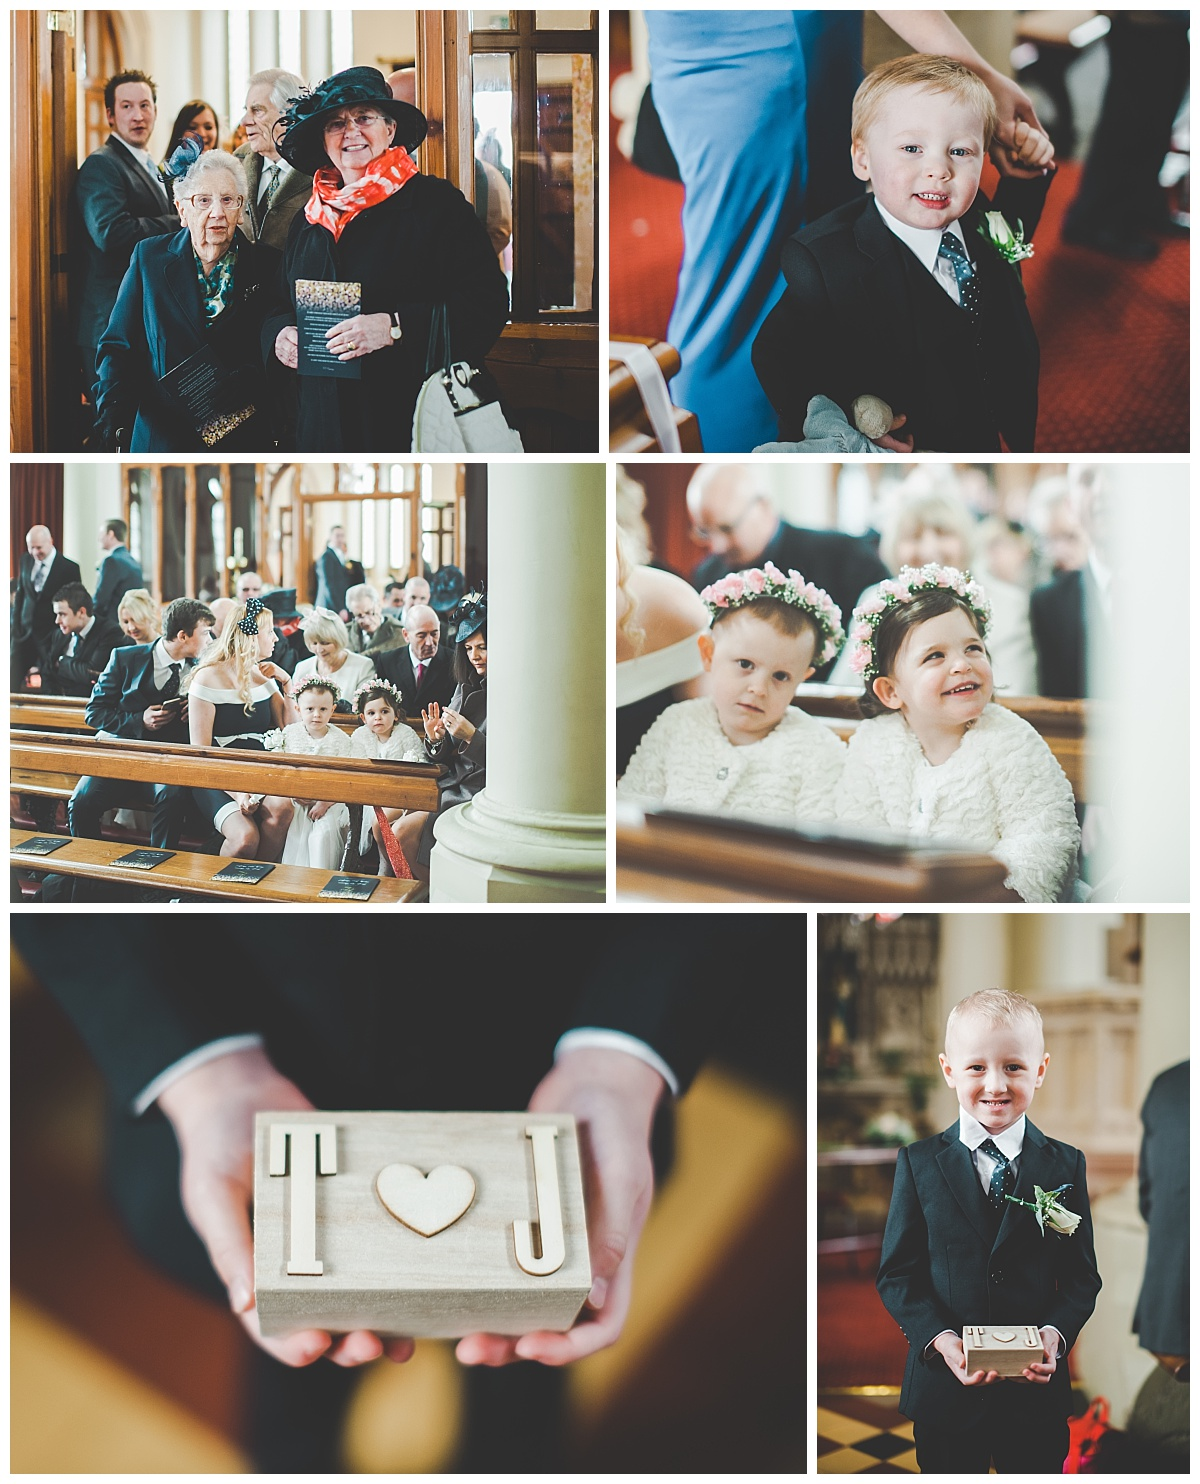 documentary style images of the guests at lancashire wedding